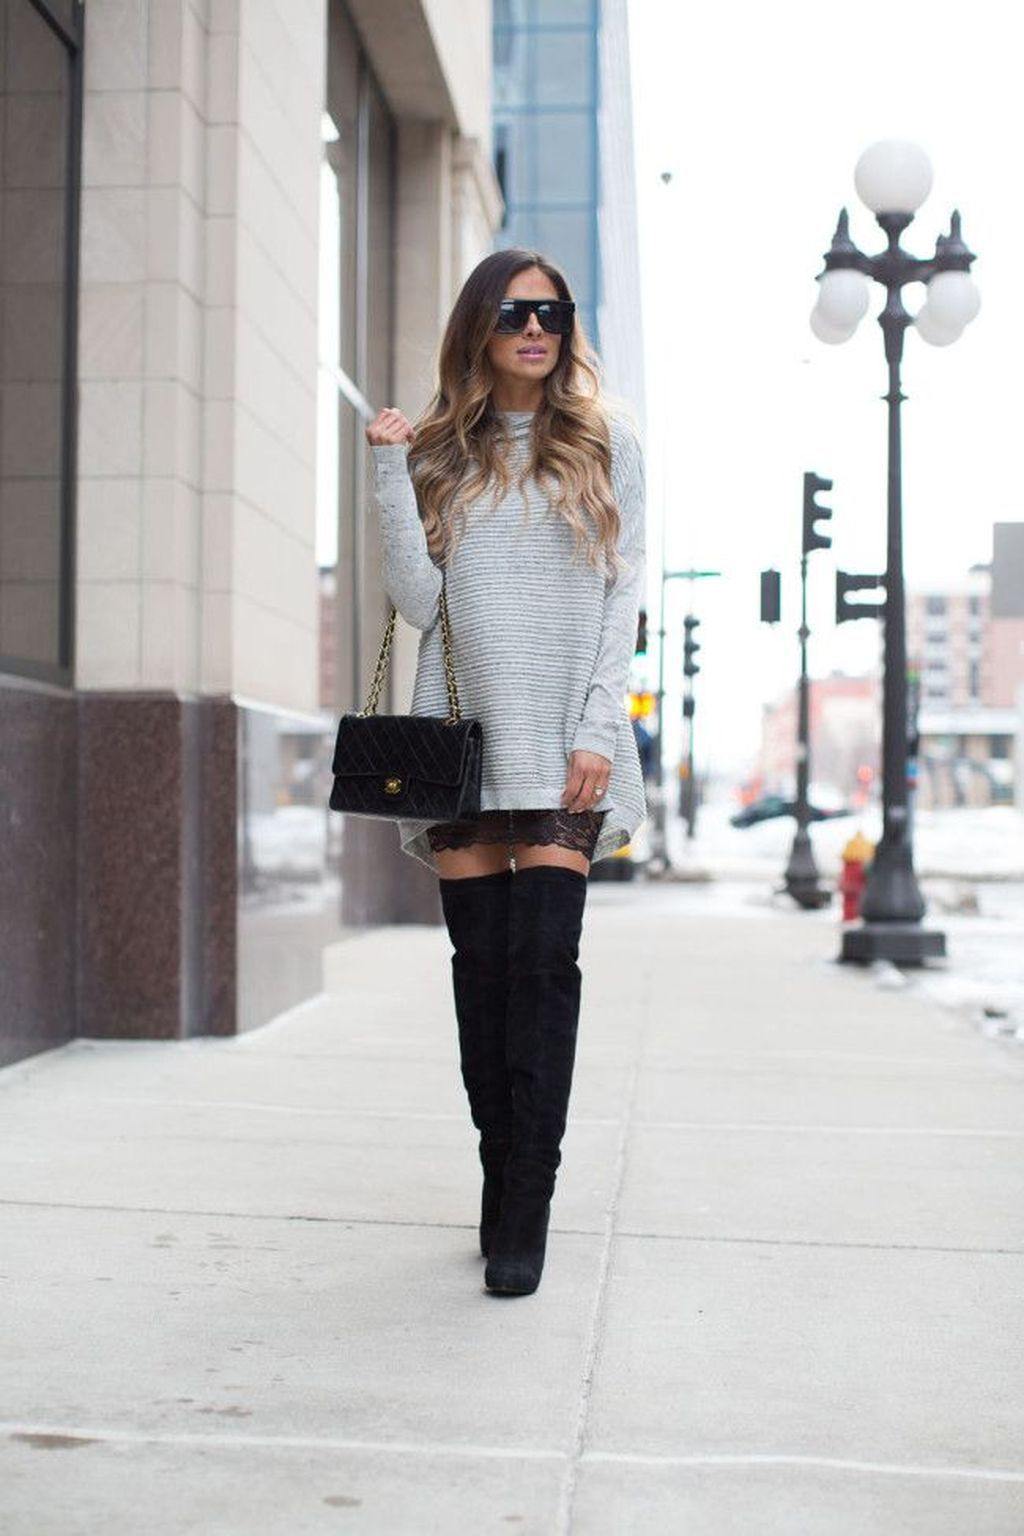 37 Stunning Outfit For Women That Look Good With Boots Sweater Dresses #mittellangeröcke 37 Stunning Outfit For Women That Look Good With Boots Sweater Dresses #mittellangeröcke